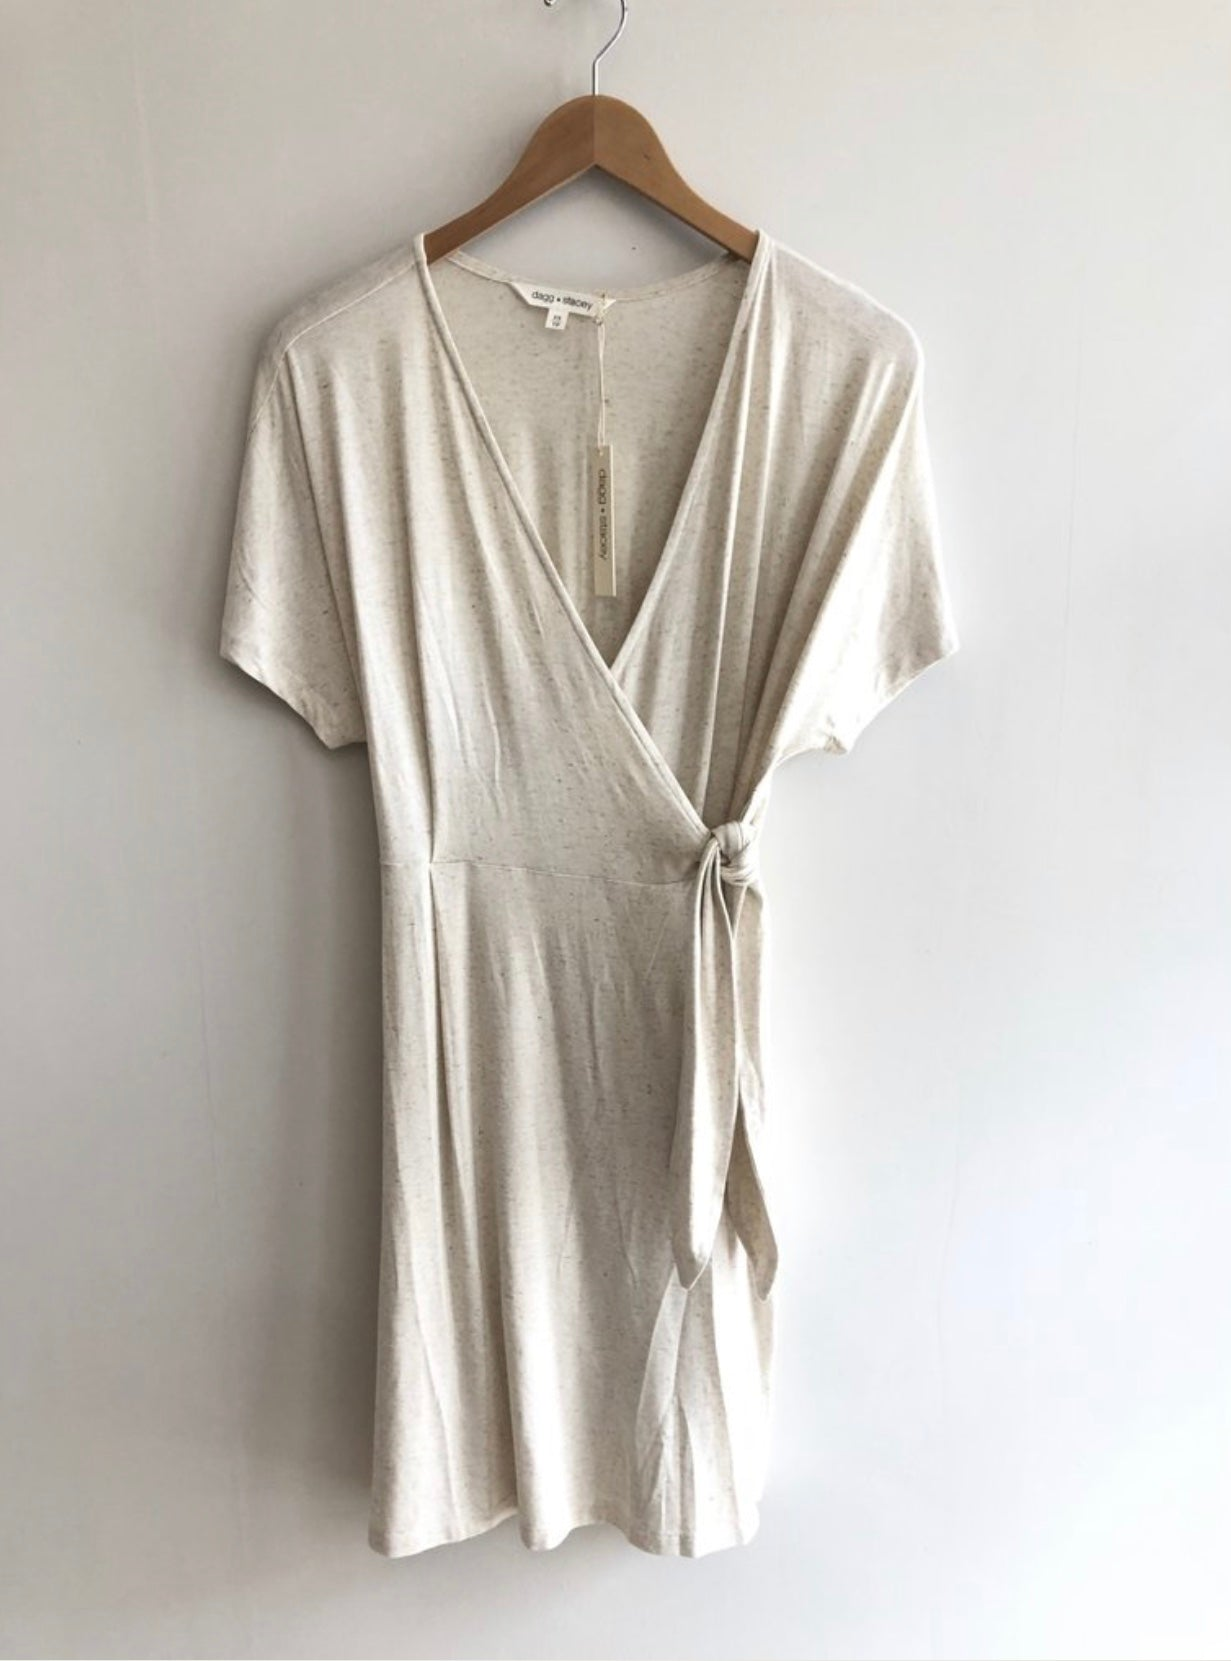 Jennings Knit Wrap Dress in 'Natural'